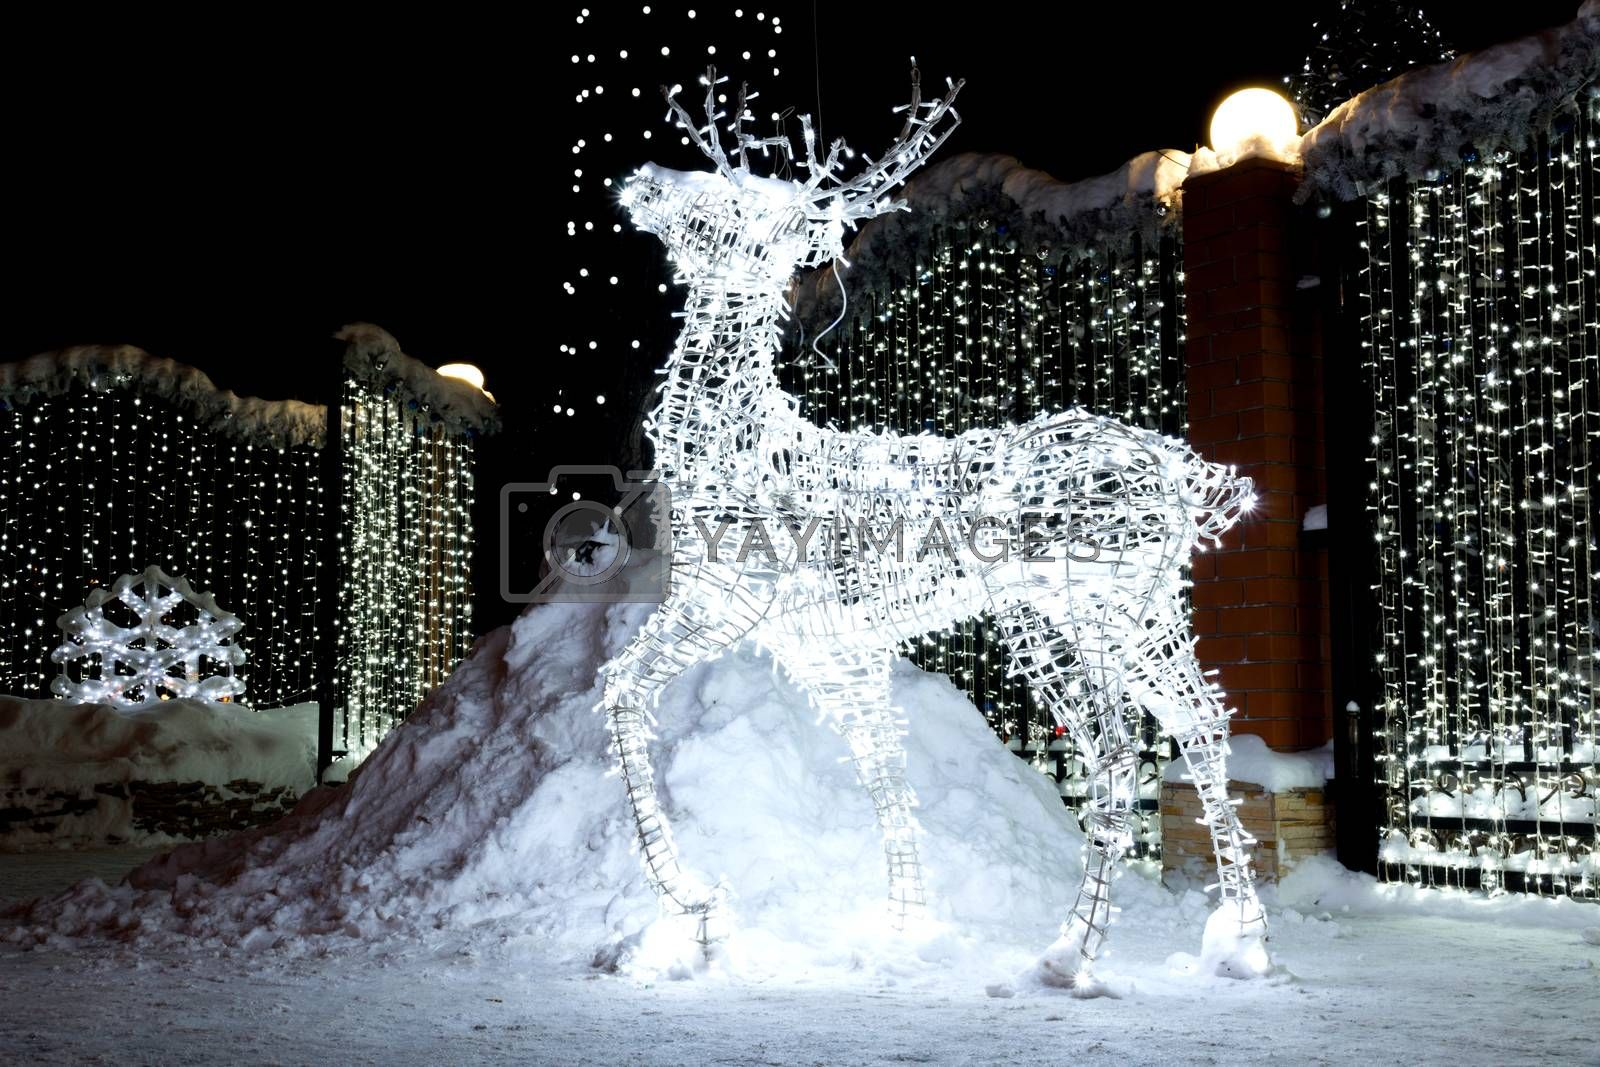 The photo depicts a Christmas reindeer from light bulbs